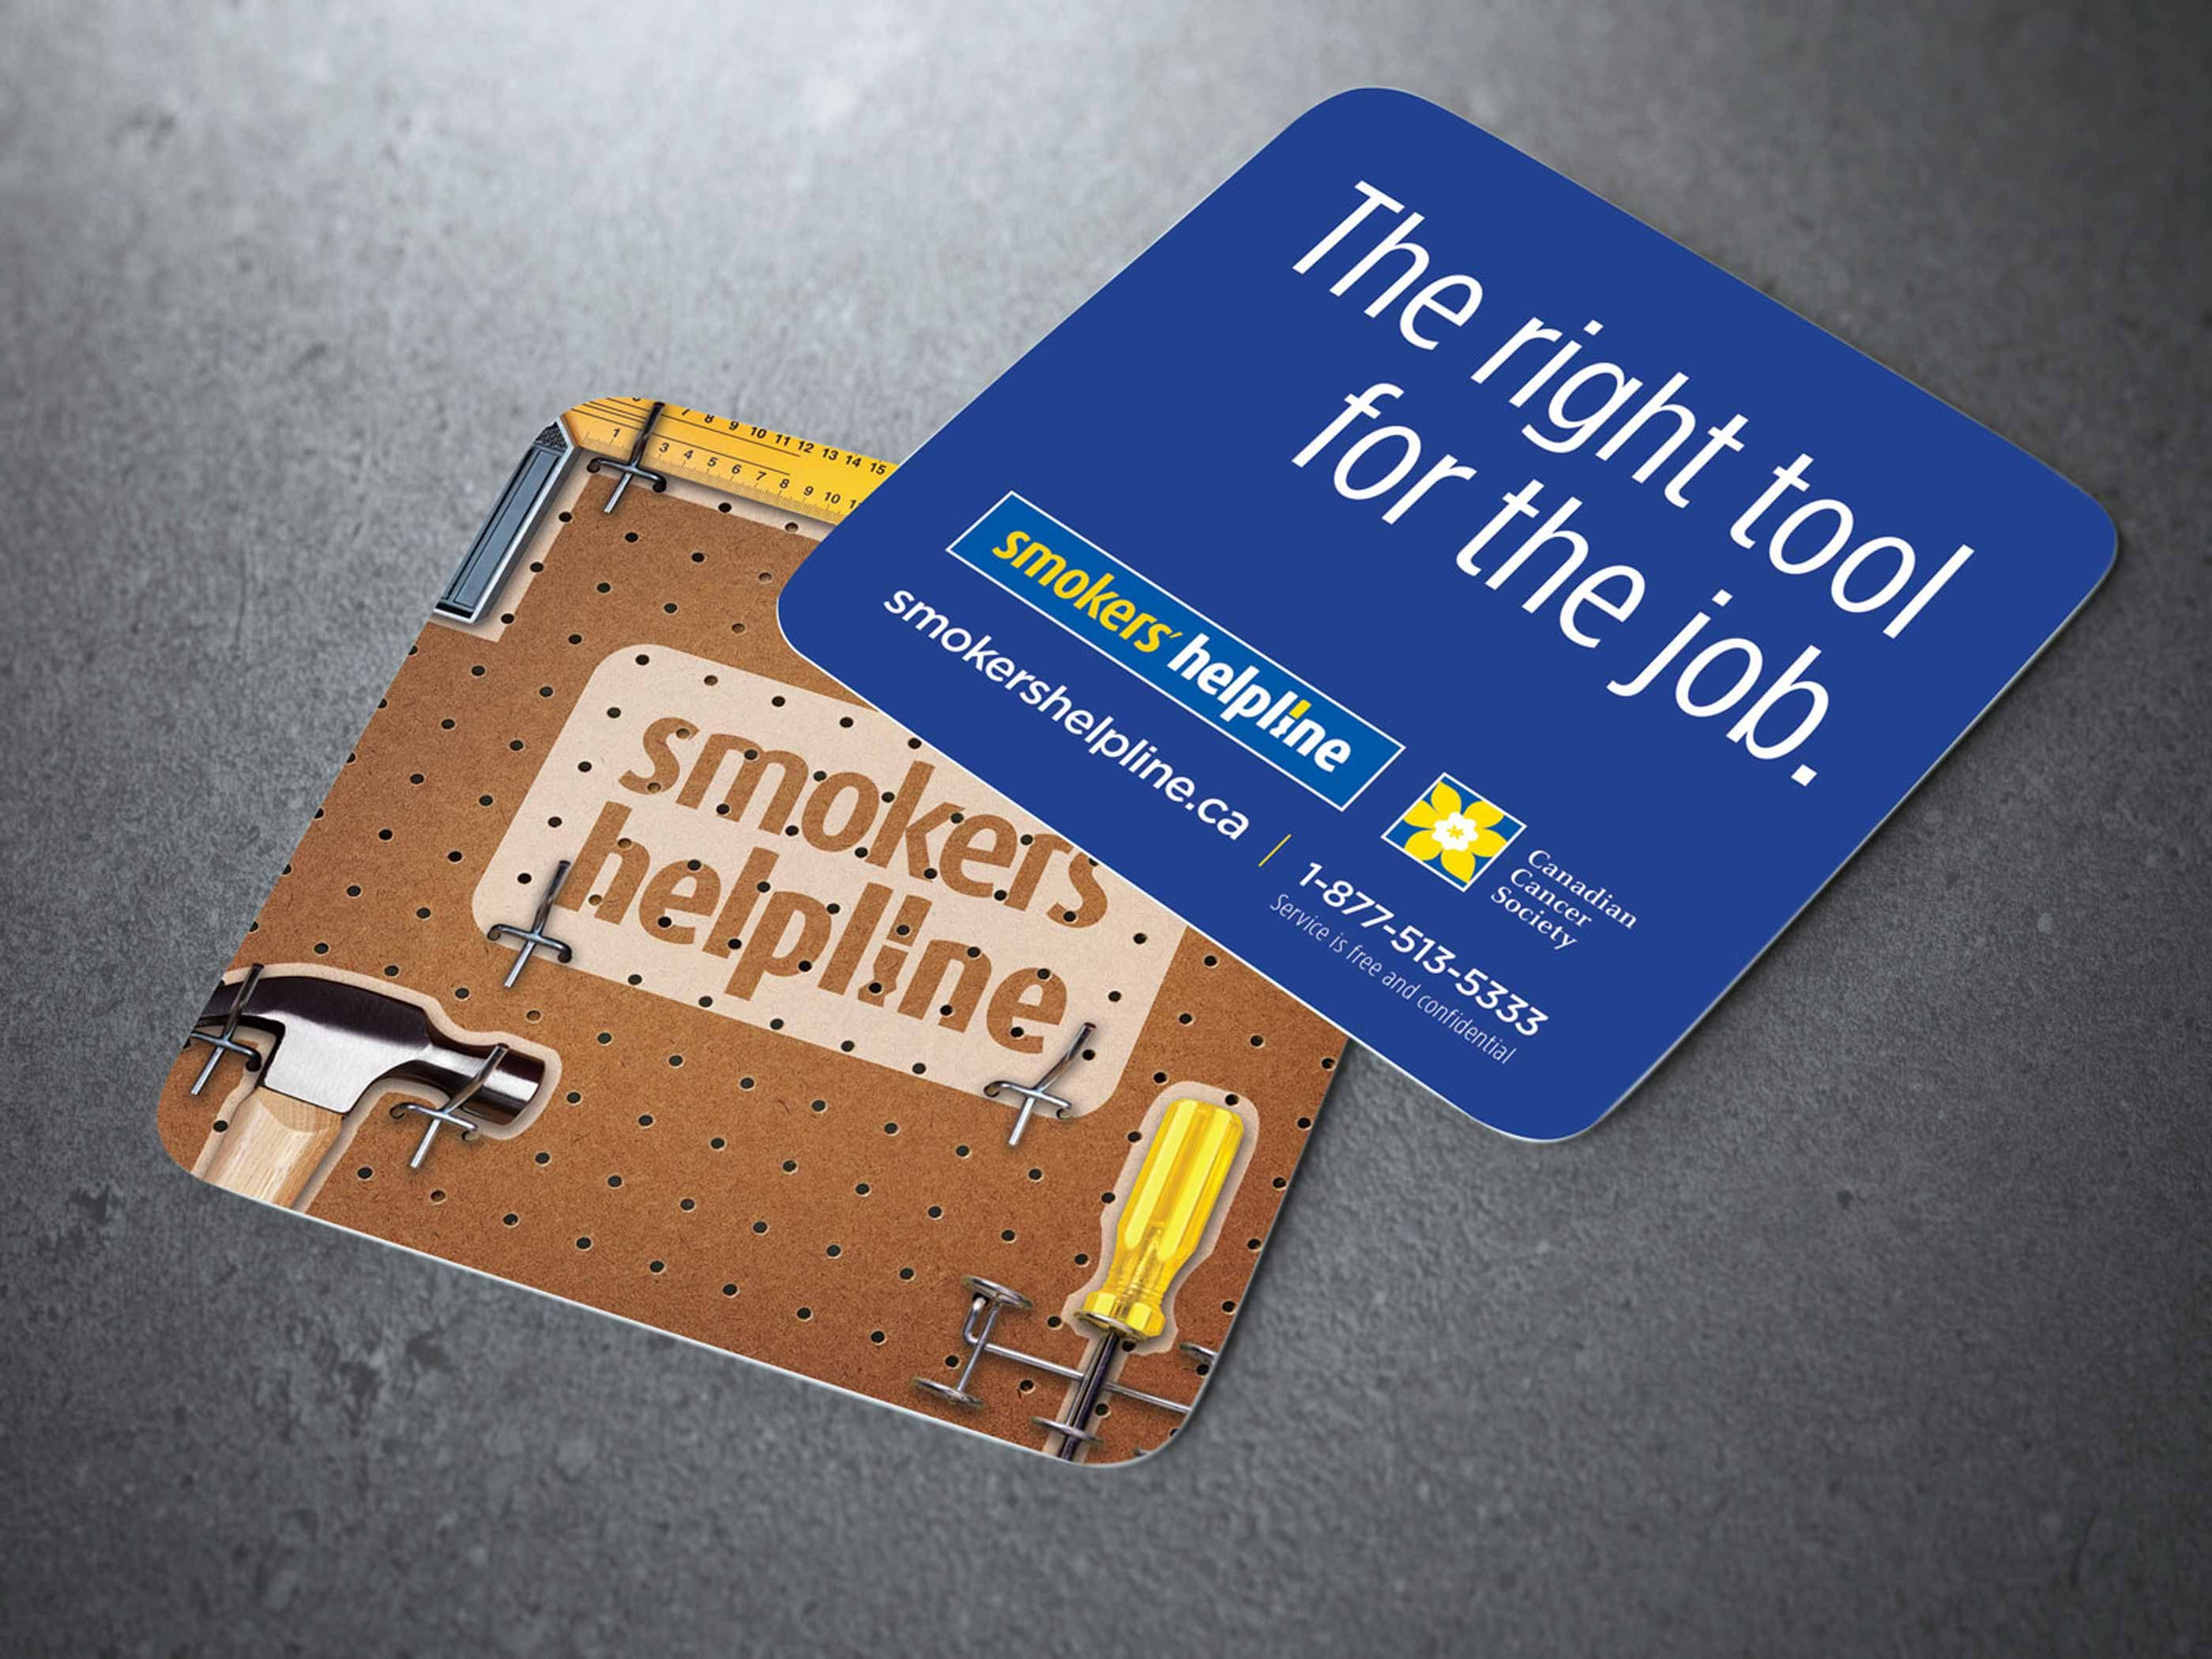 Work - Smokers' Helpline Coasters